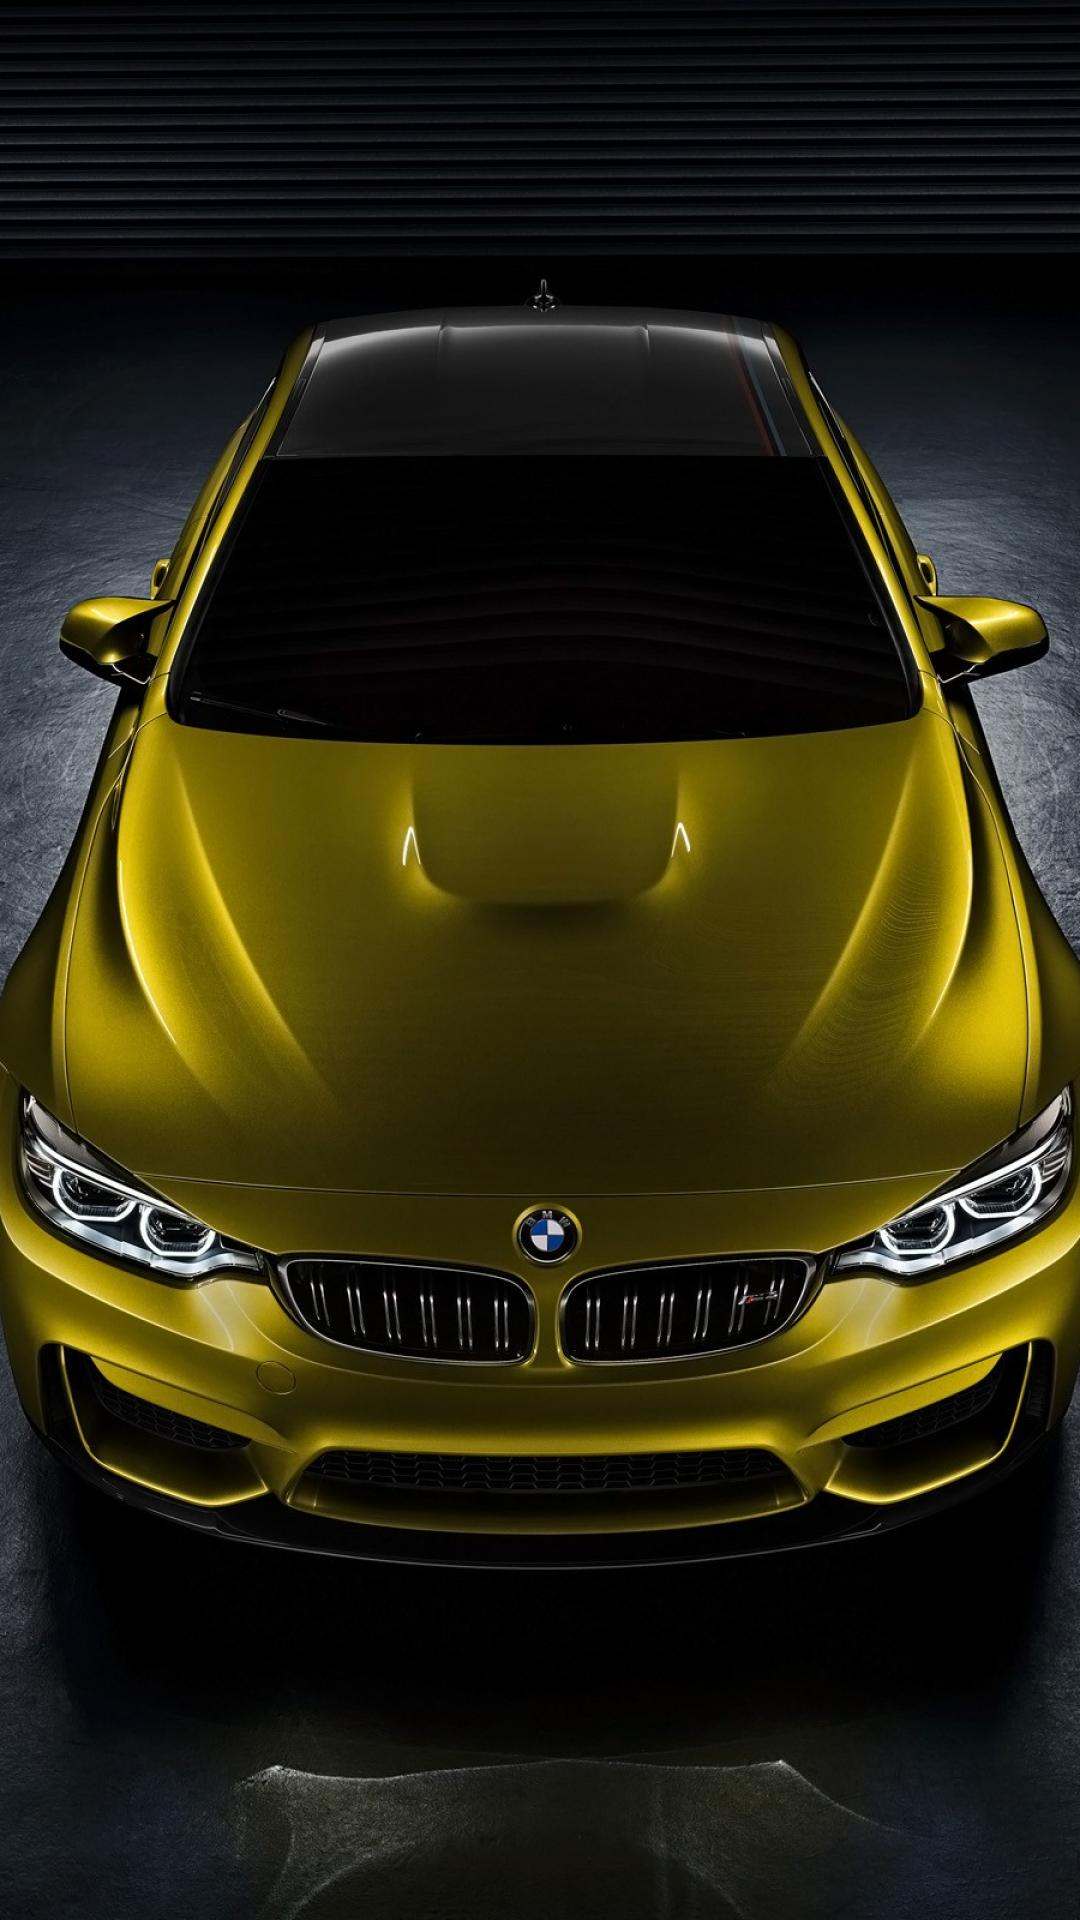 3d Wallpapers Free Download For Samsung Mobile Bmw Iphone Backgrounds Hd Pixelstalk Net